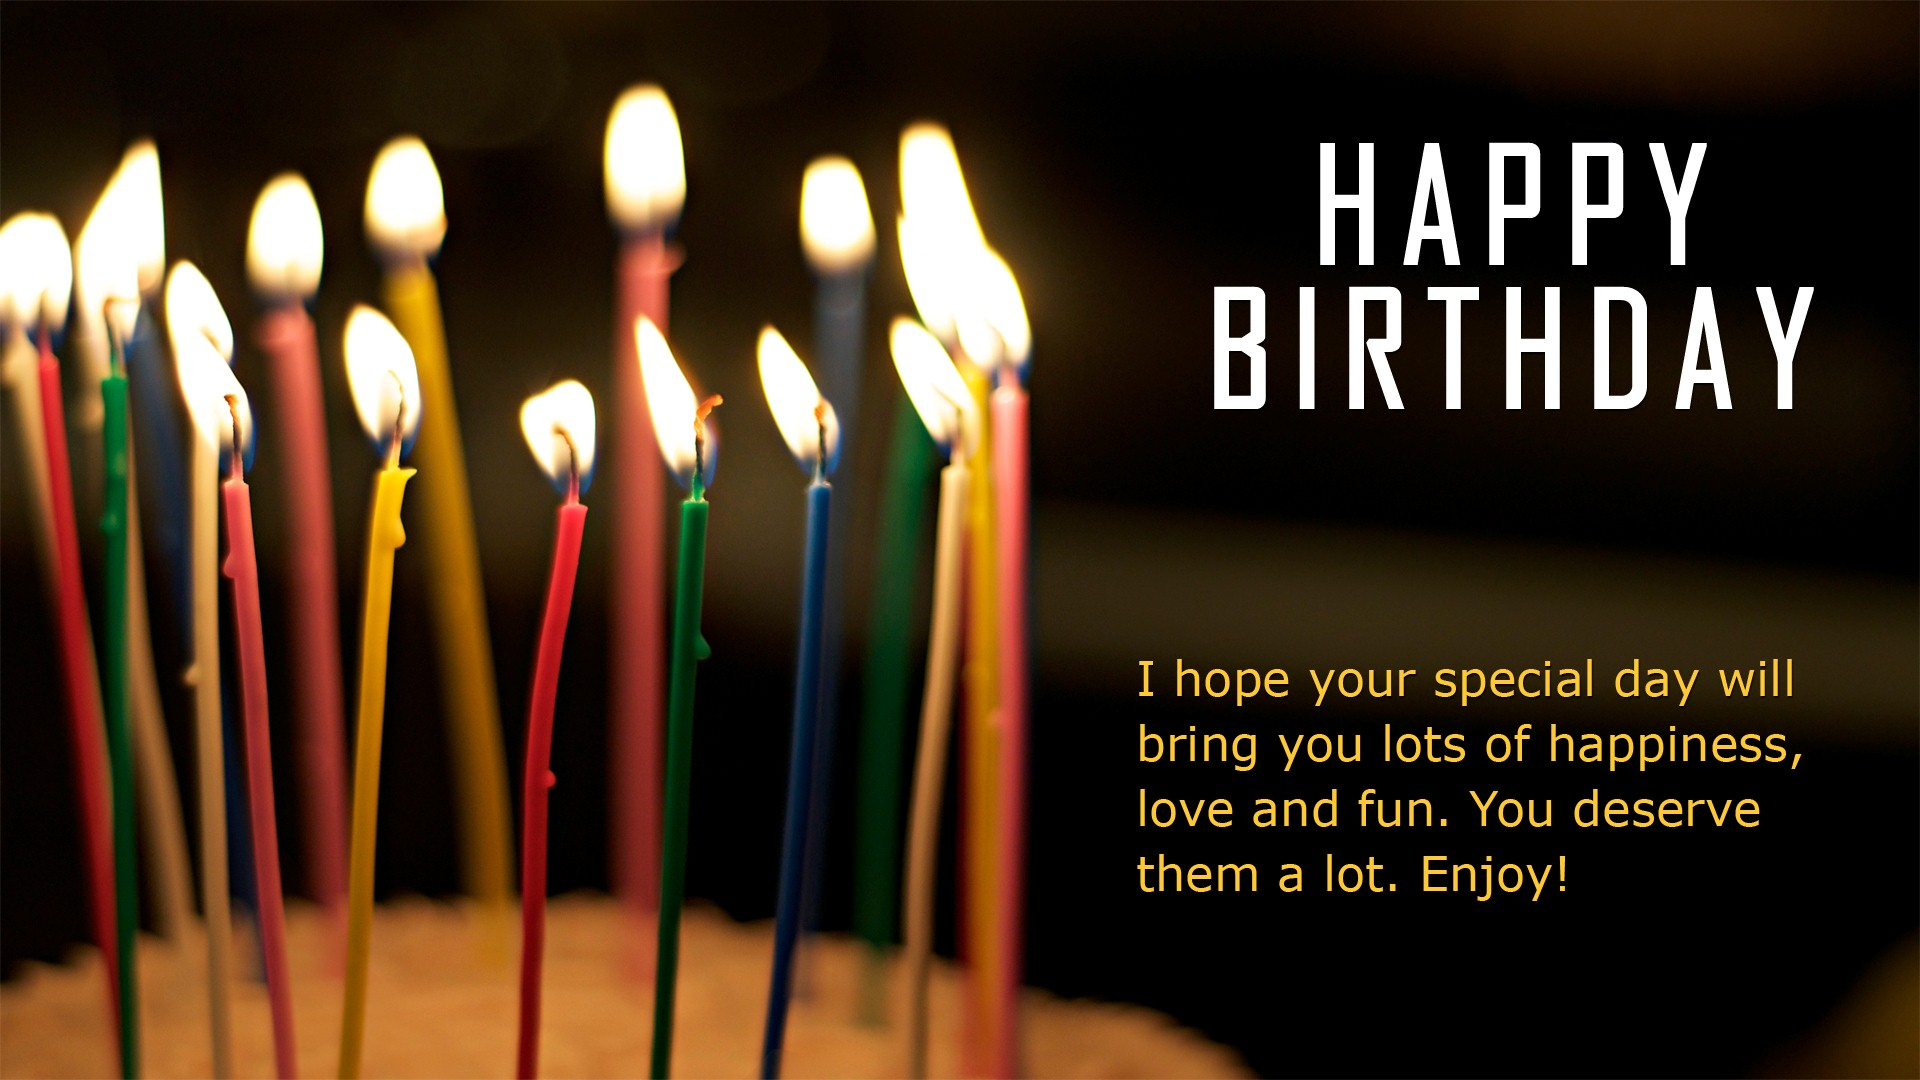 birthday wishes wallpapers free download ; Happy_Birthday_Greeting_Wishes_HD_Wallpapers